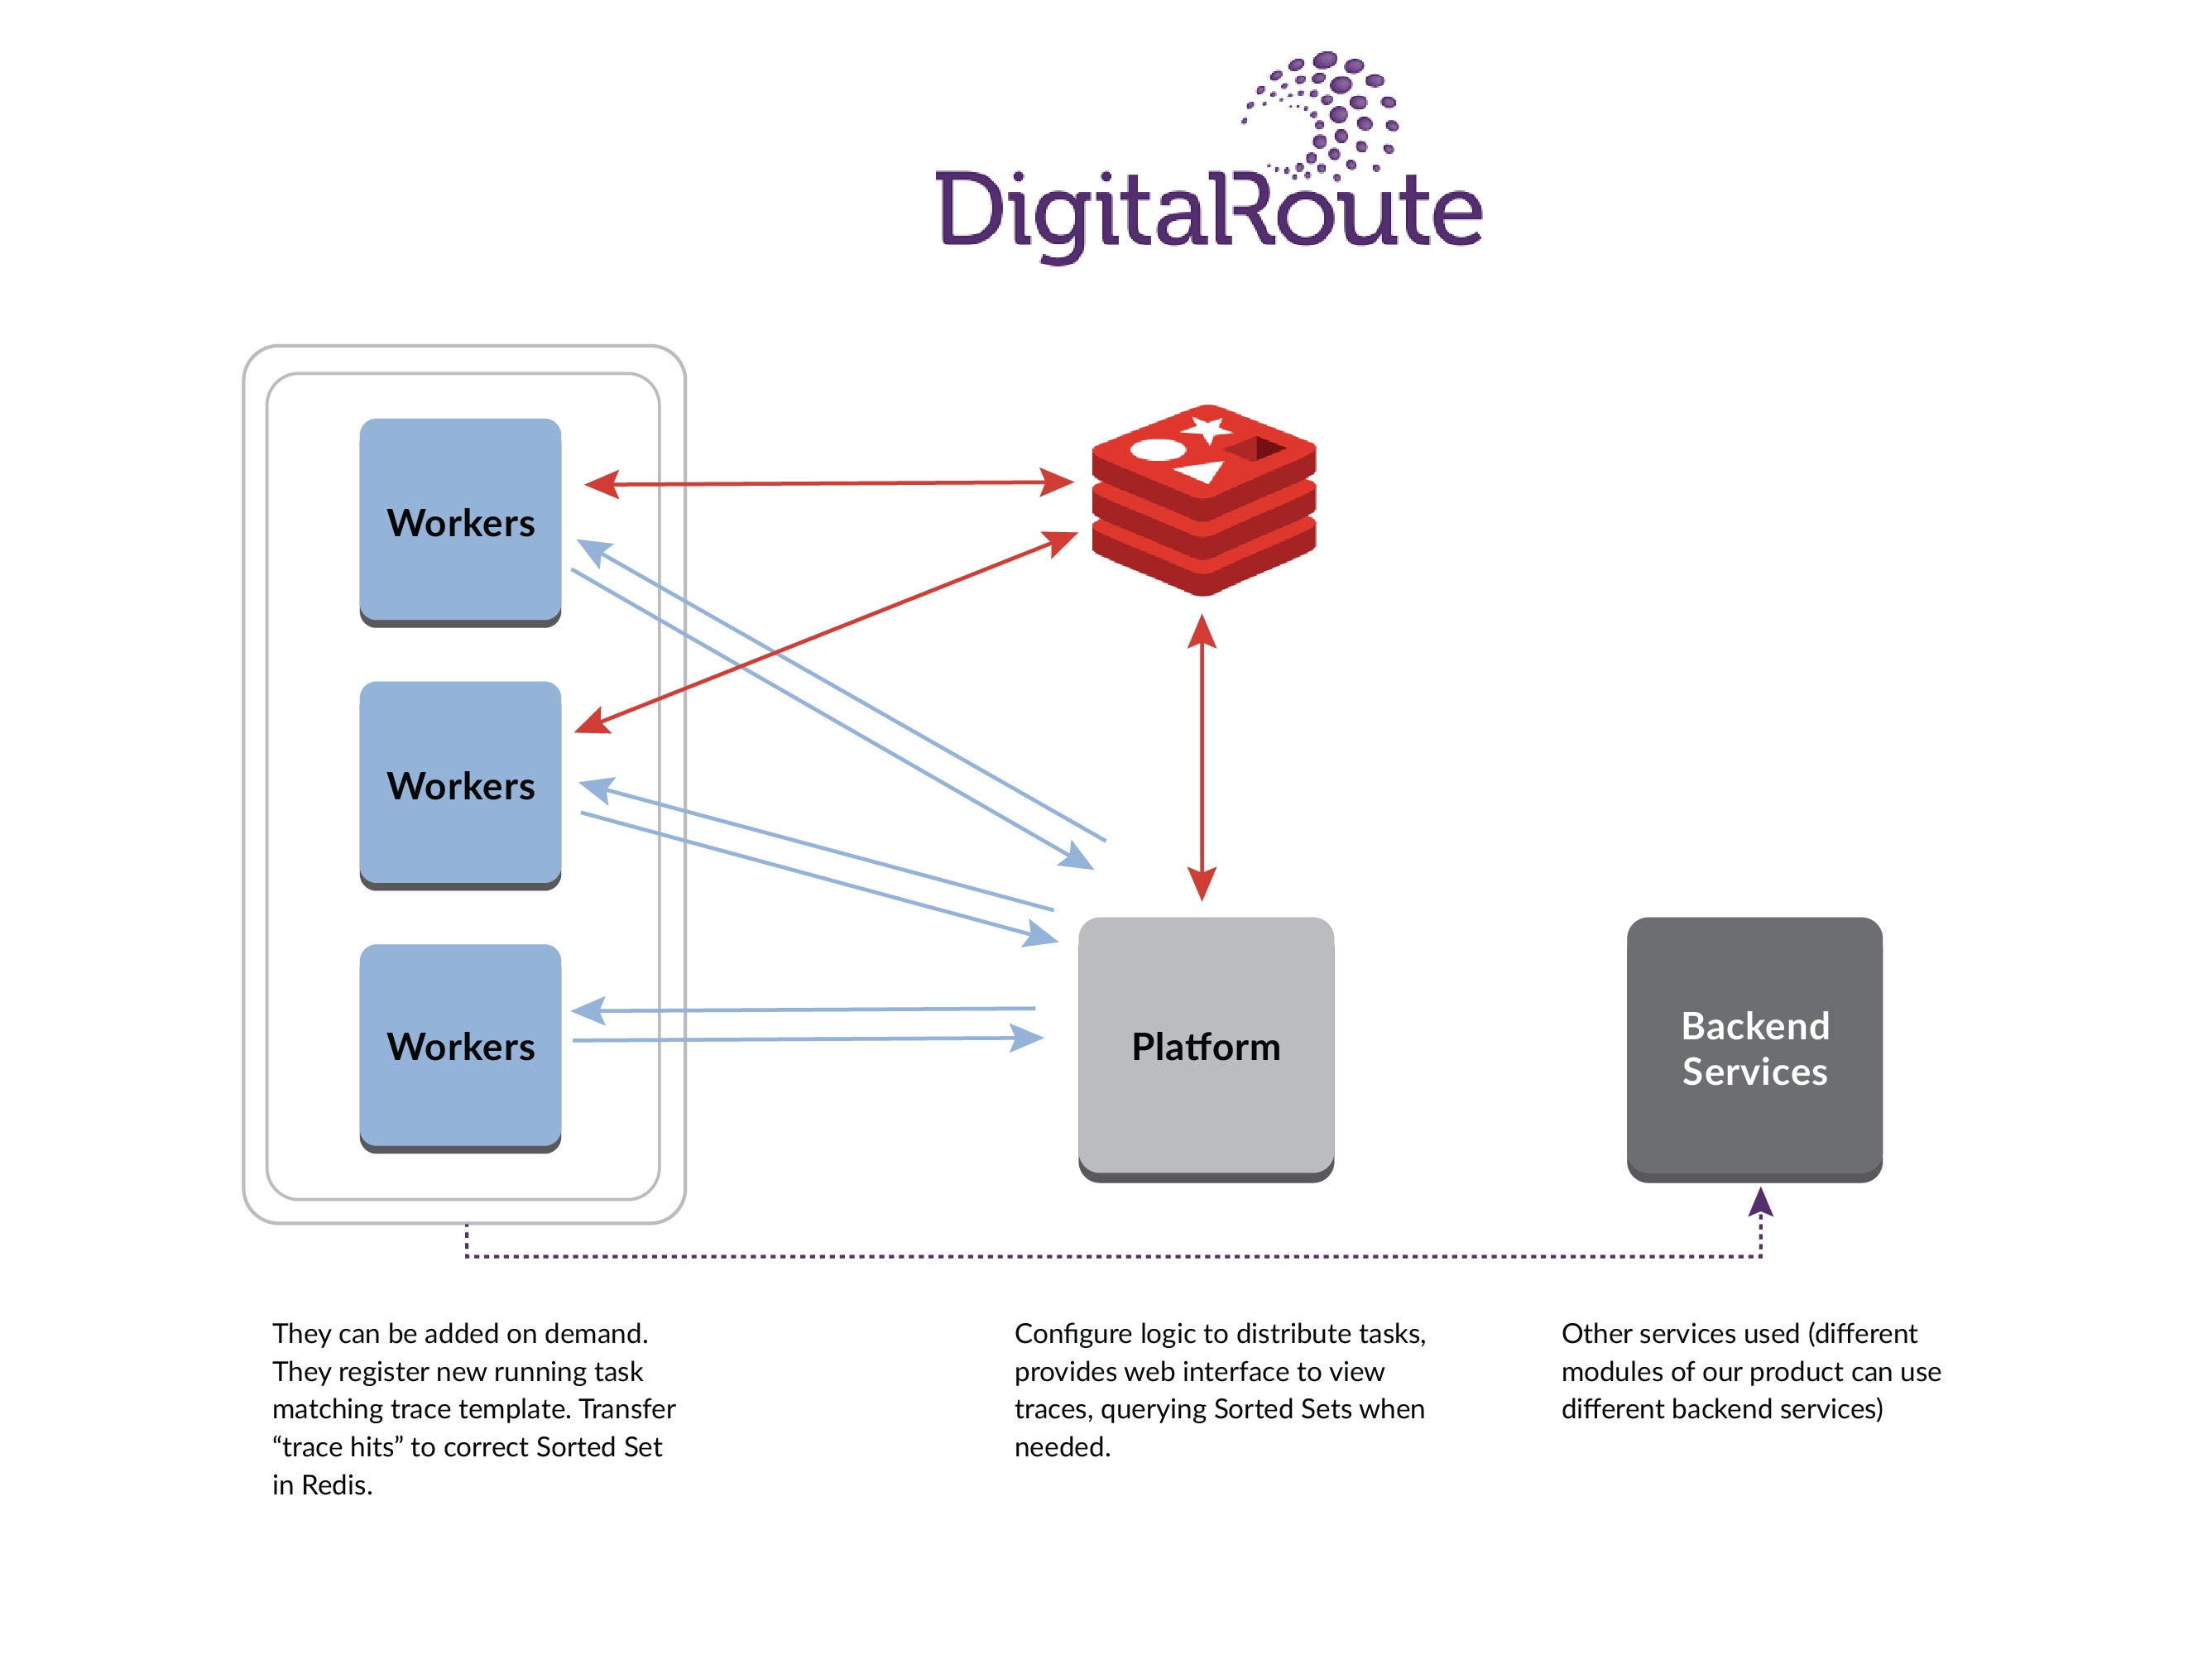 Chart describing DigitalRoute's trace flow from workers, to platform, to backend services